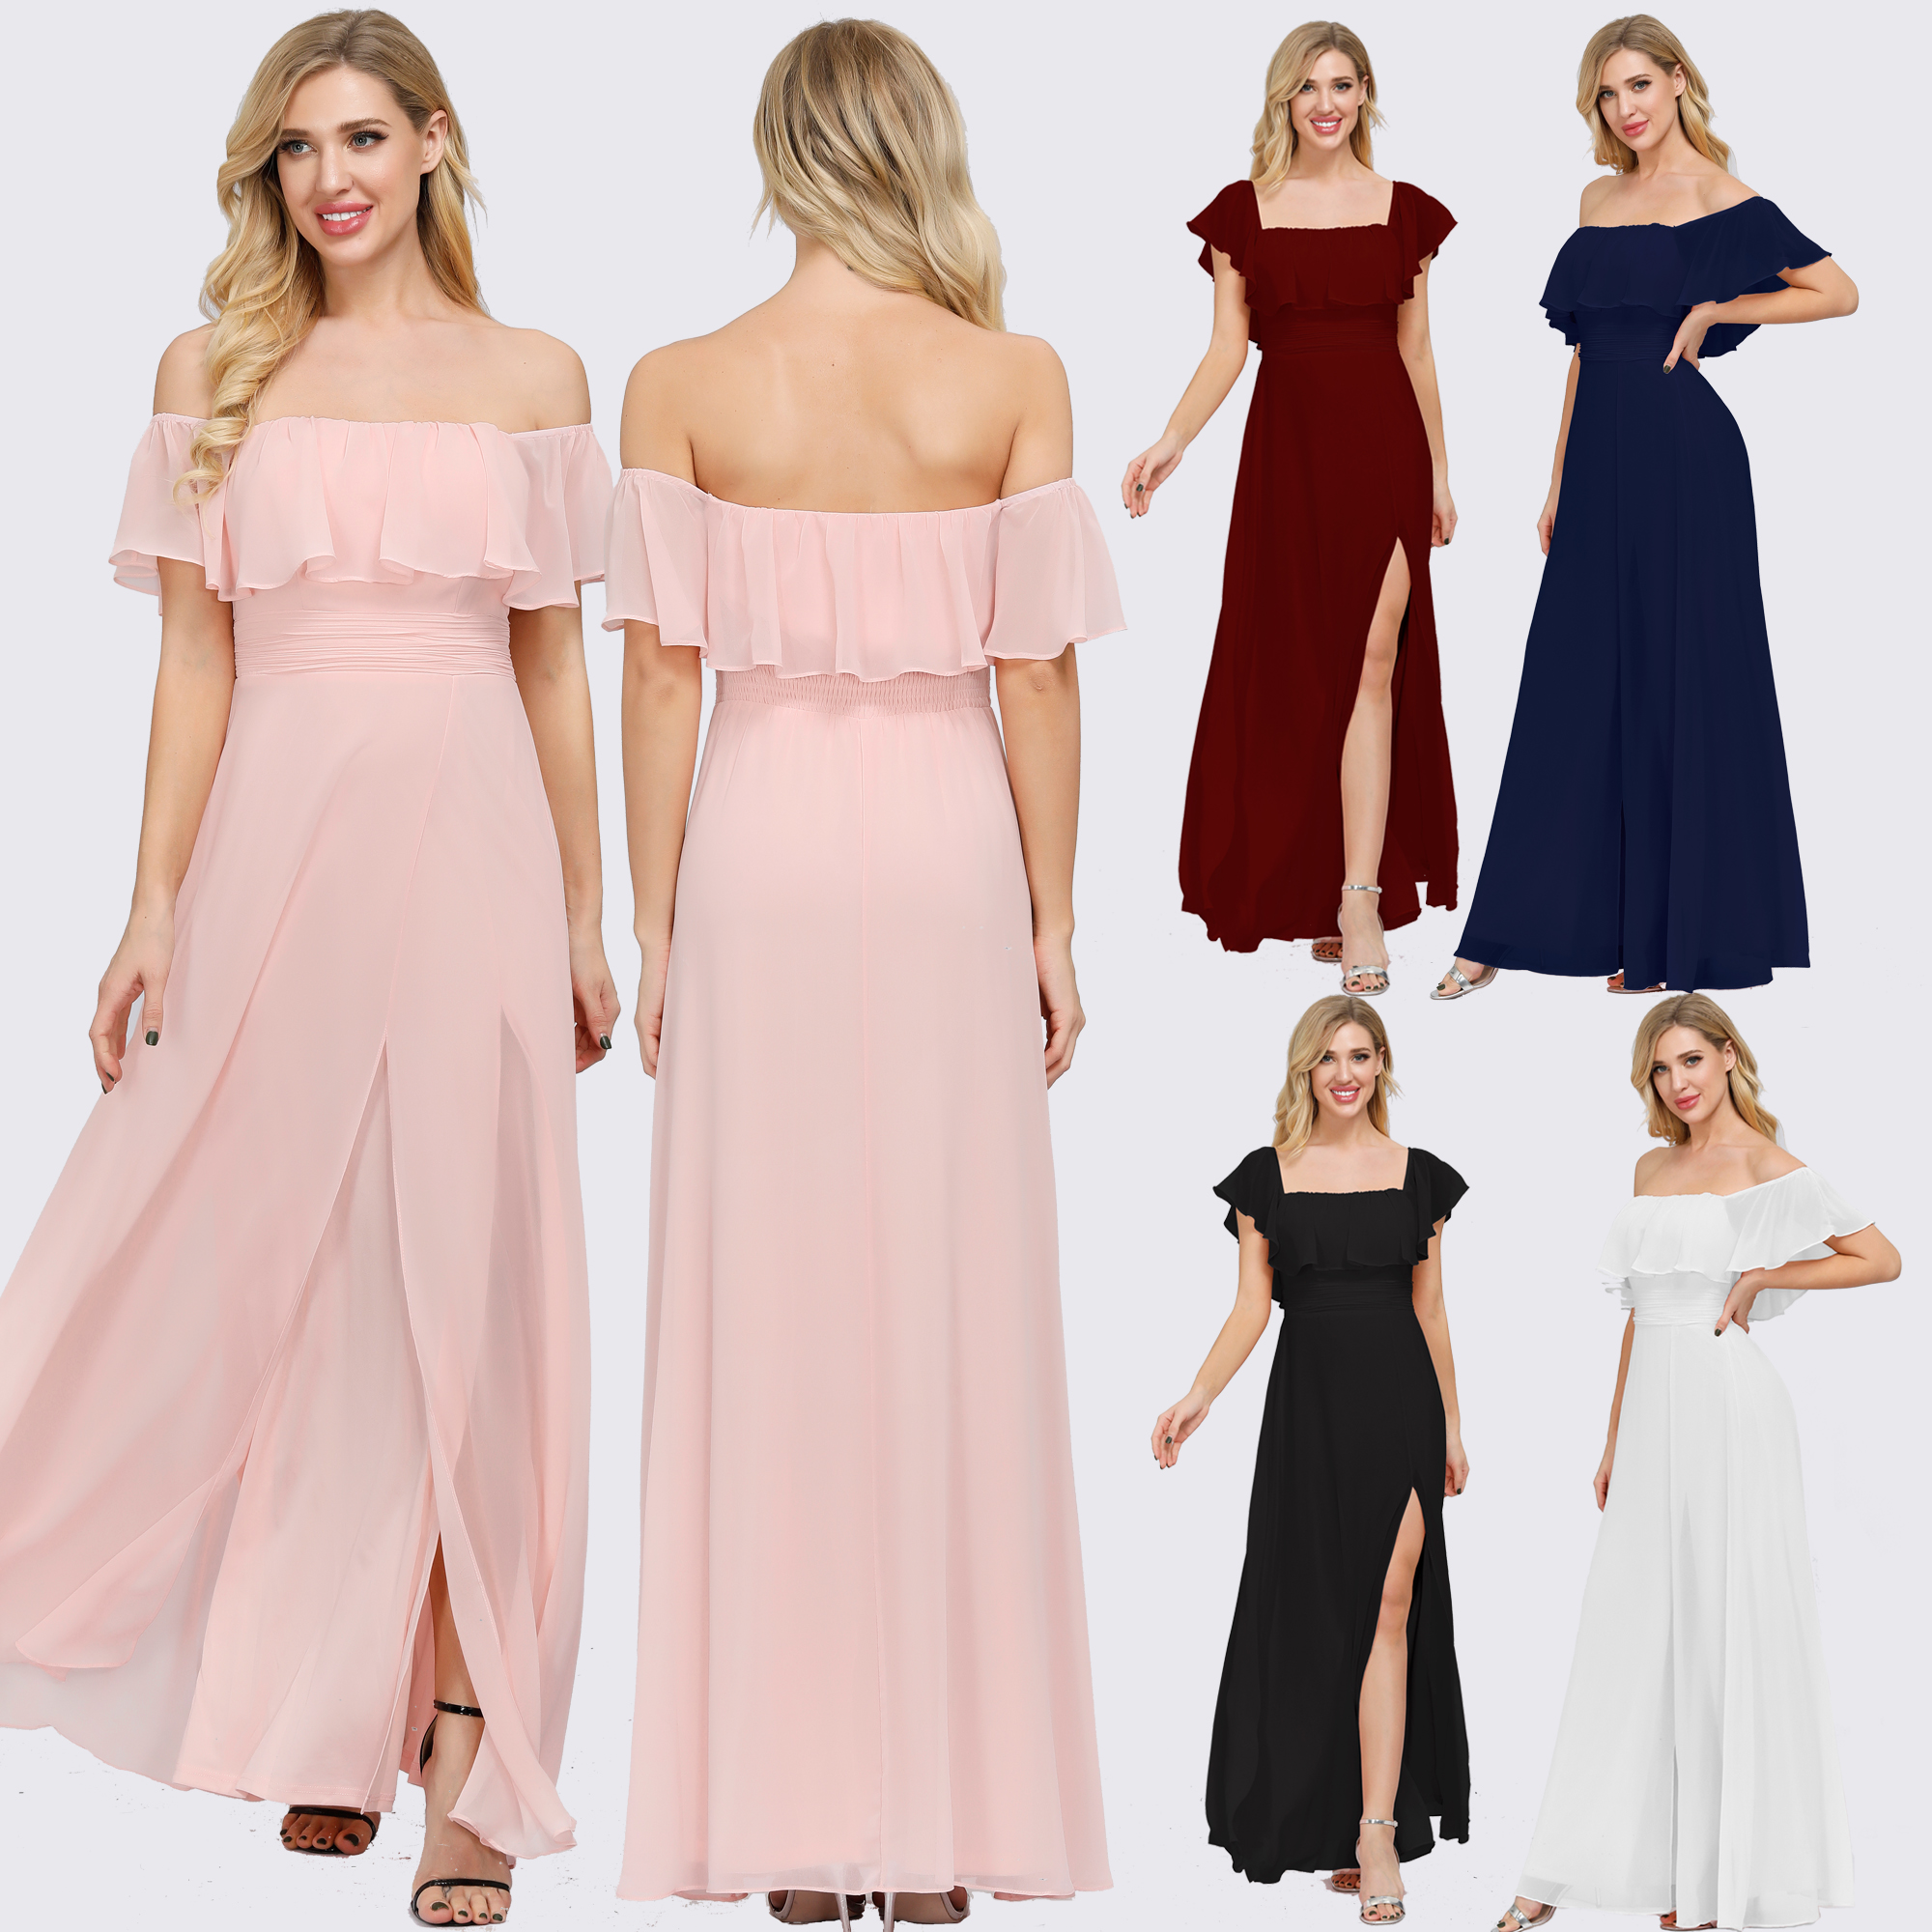 Plus Size Boat Neck Pink A Line Bridesmaid Dresses Vestidos De Madrinha XUCTHHC Formal Dress For Wedding Party 2020